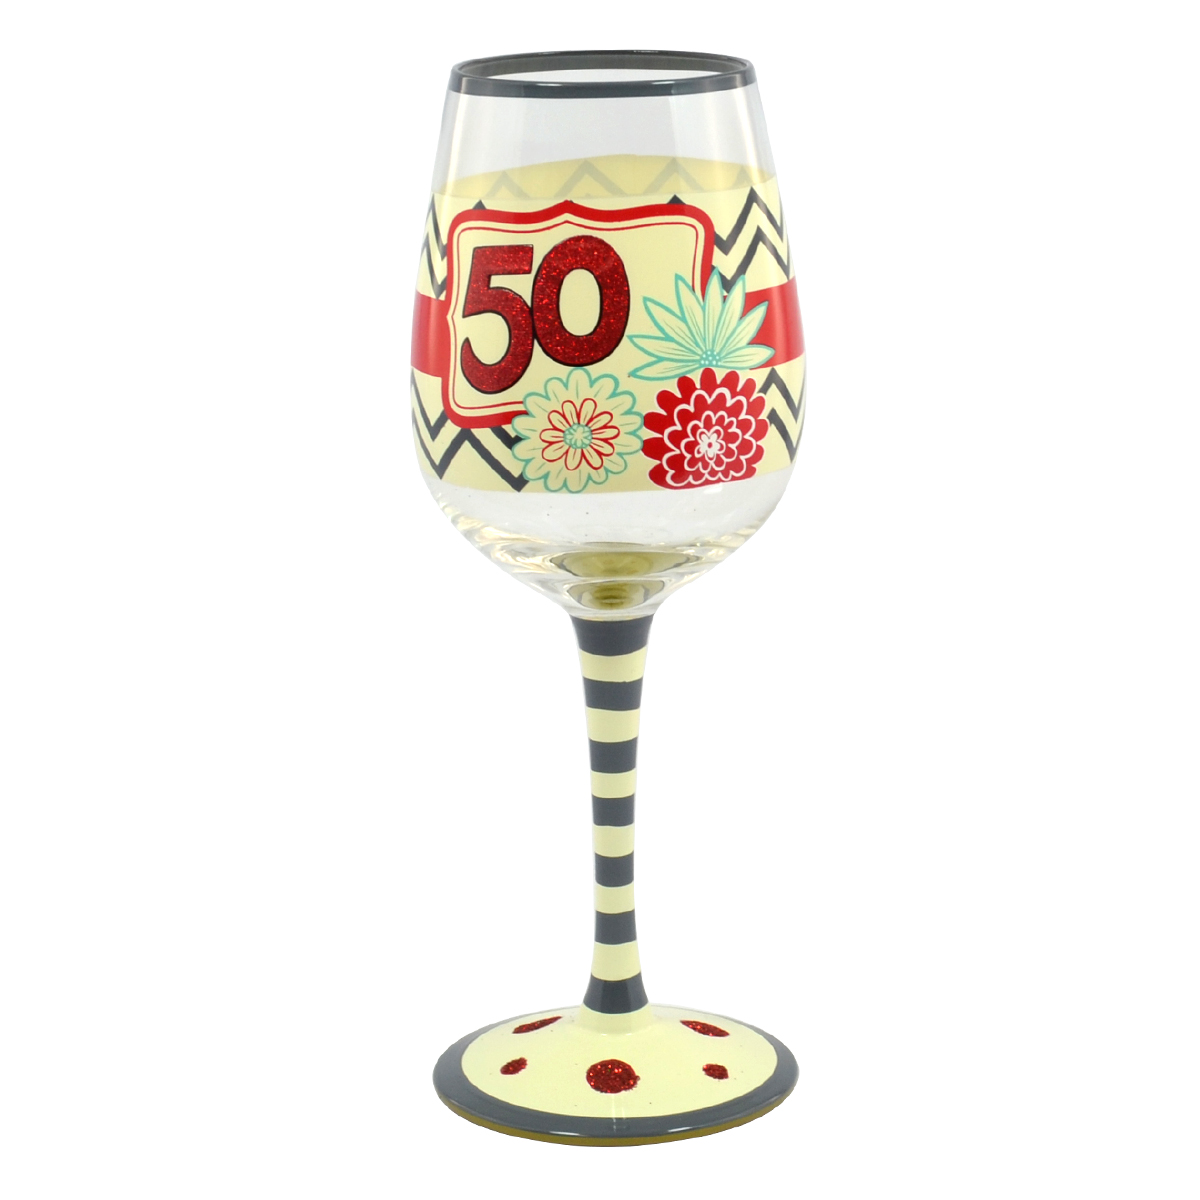 50th Birthday Off The Cuff Decorated Wine Glass In Gift